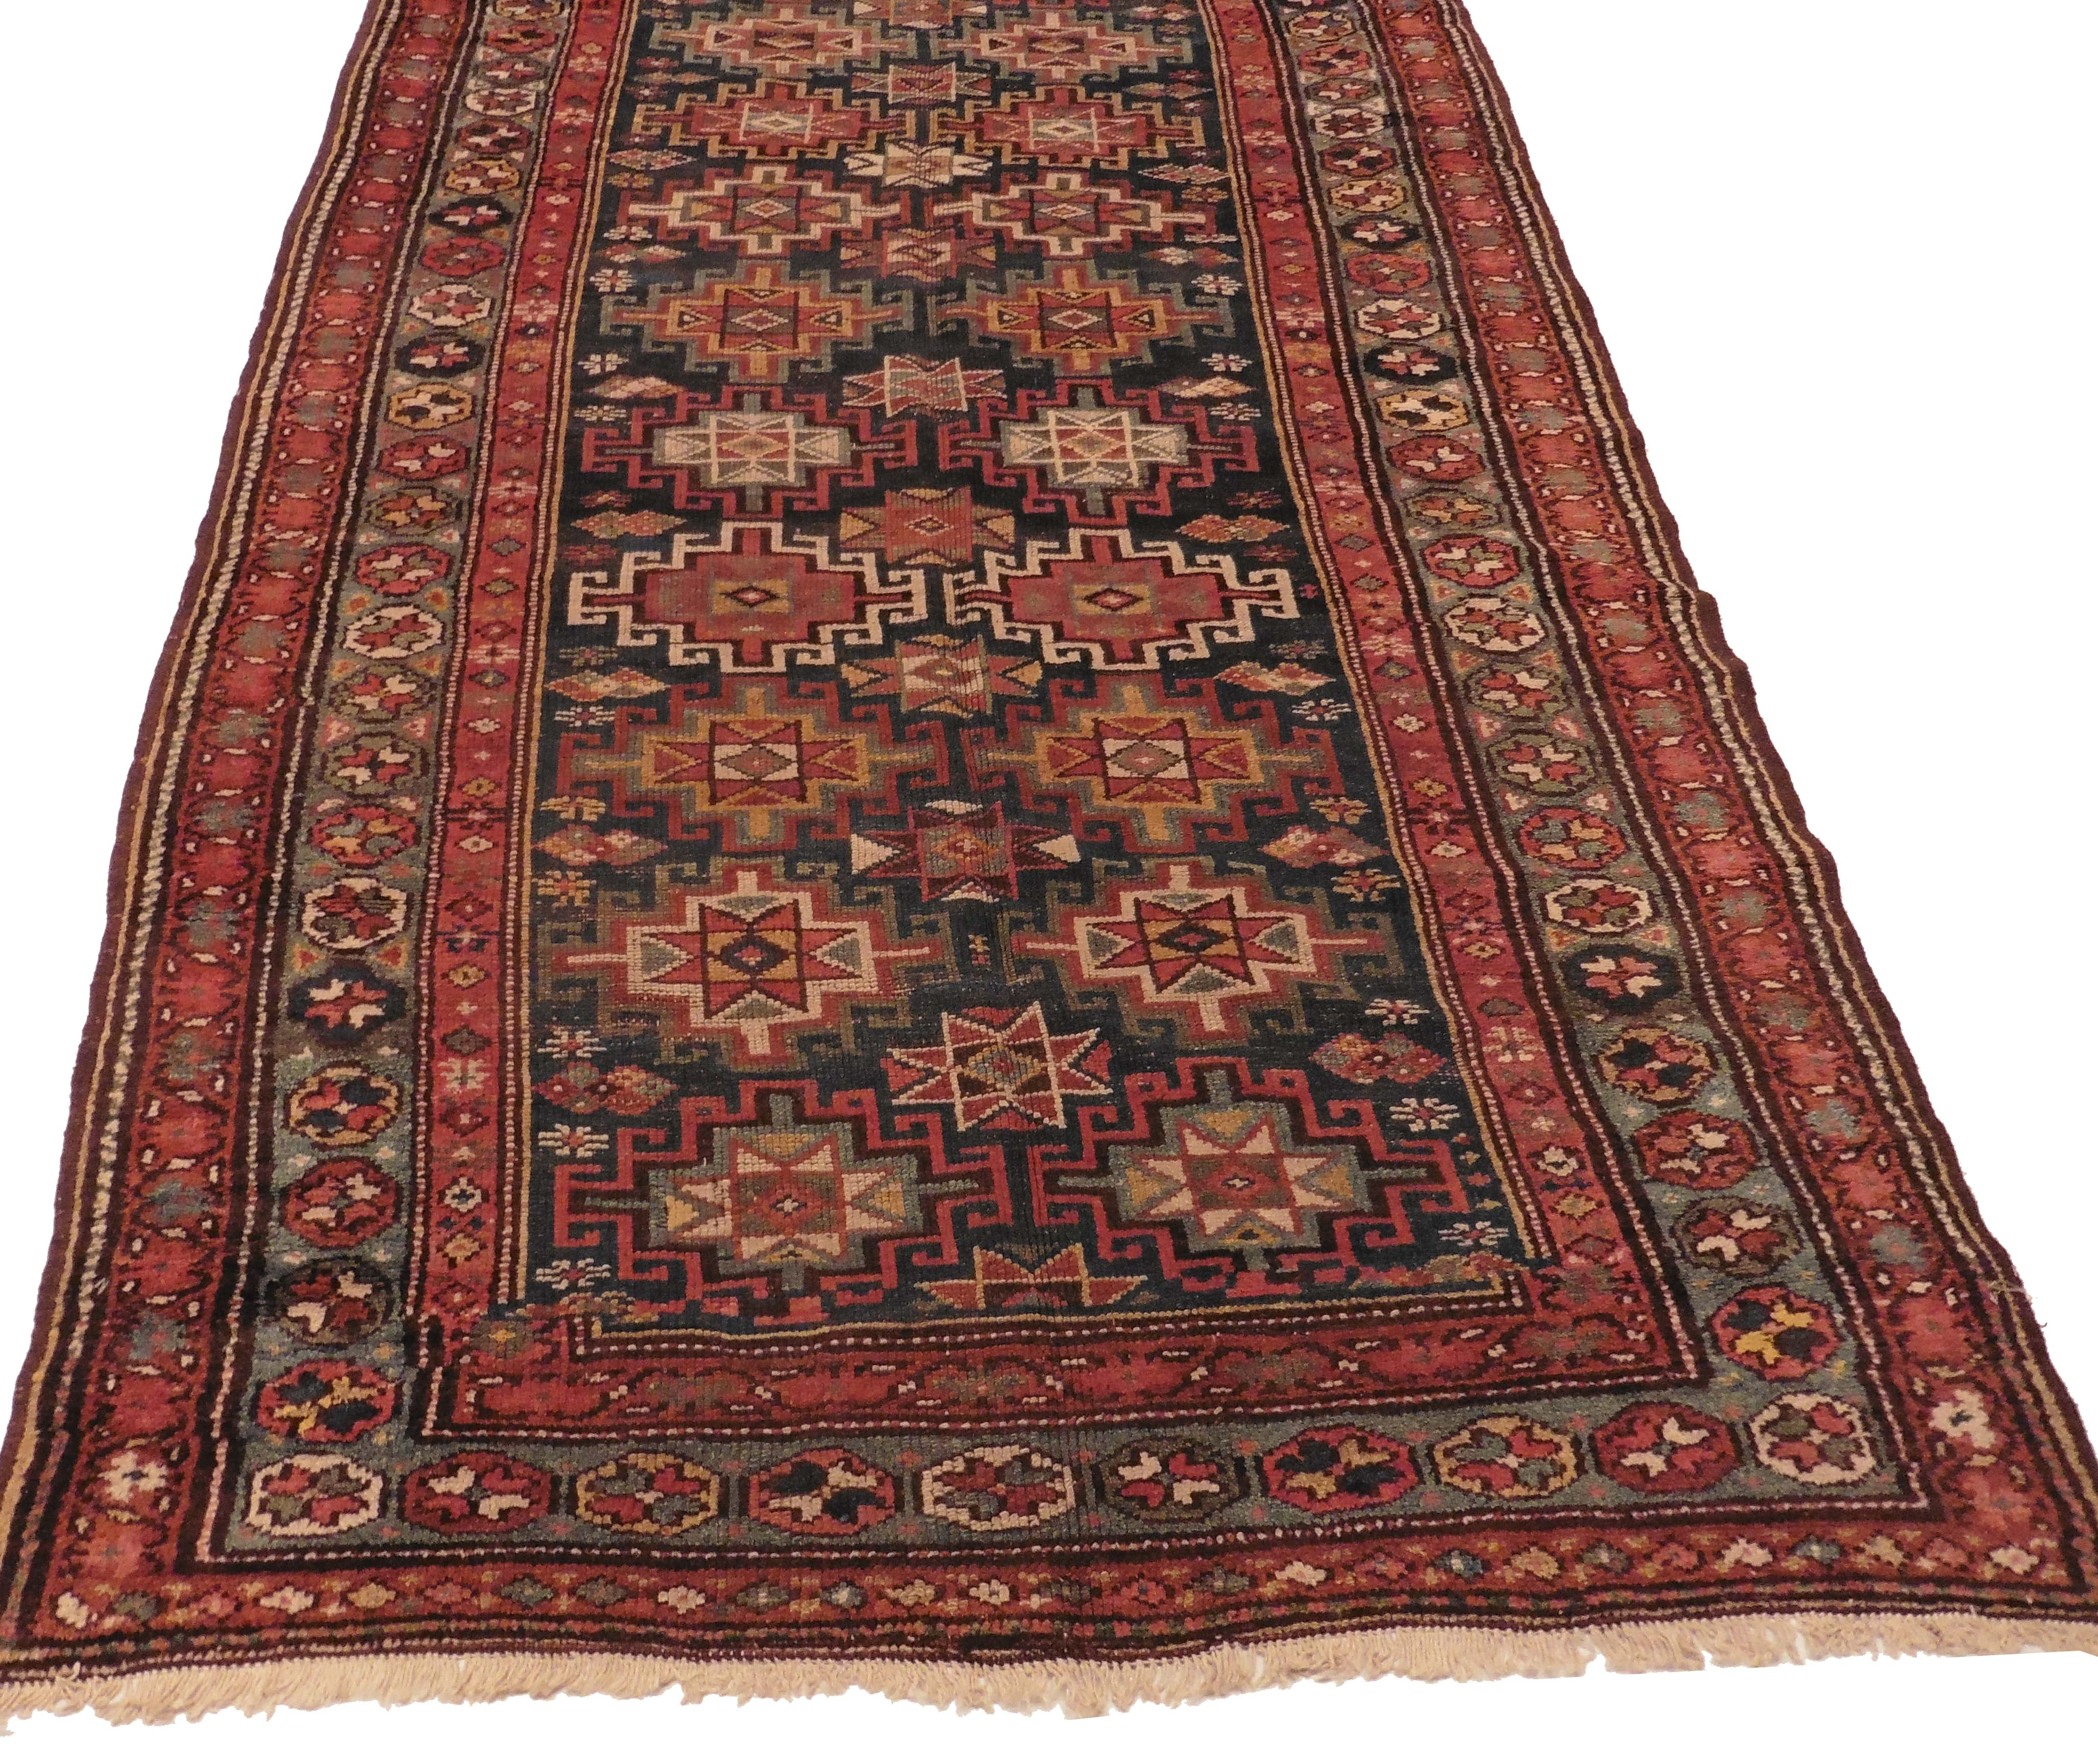 Antique Persian Kordish Runner 5x13 Wool Rug 8019